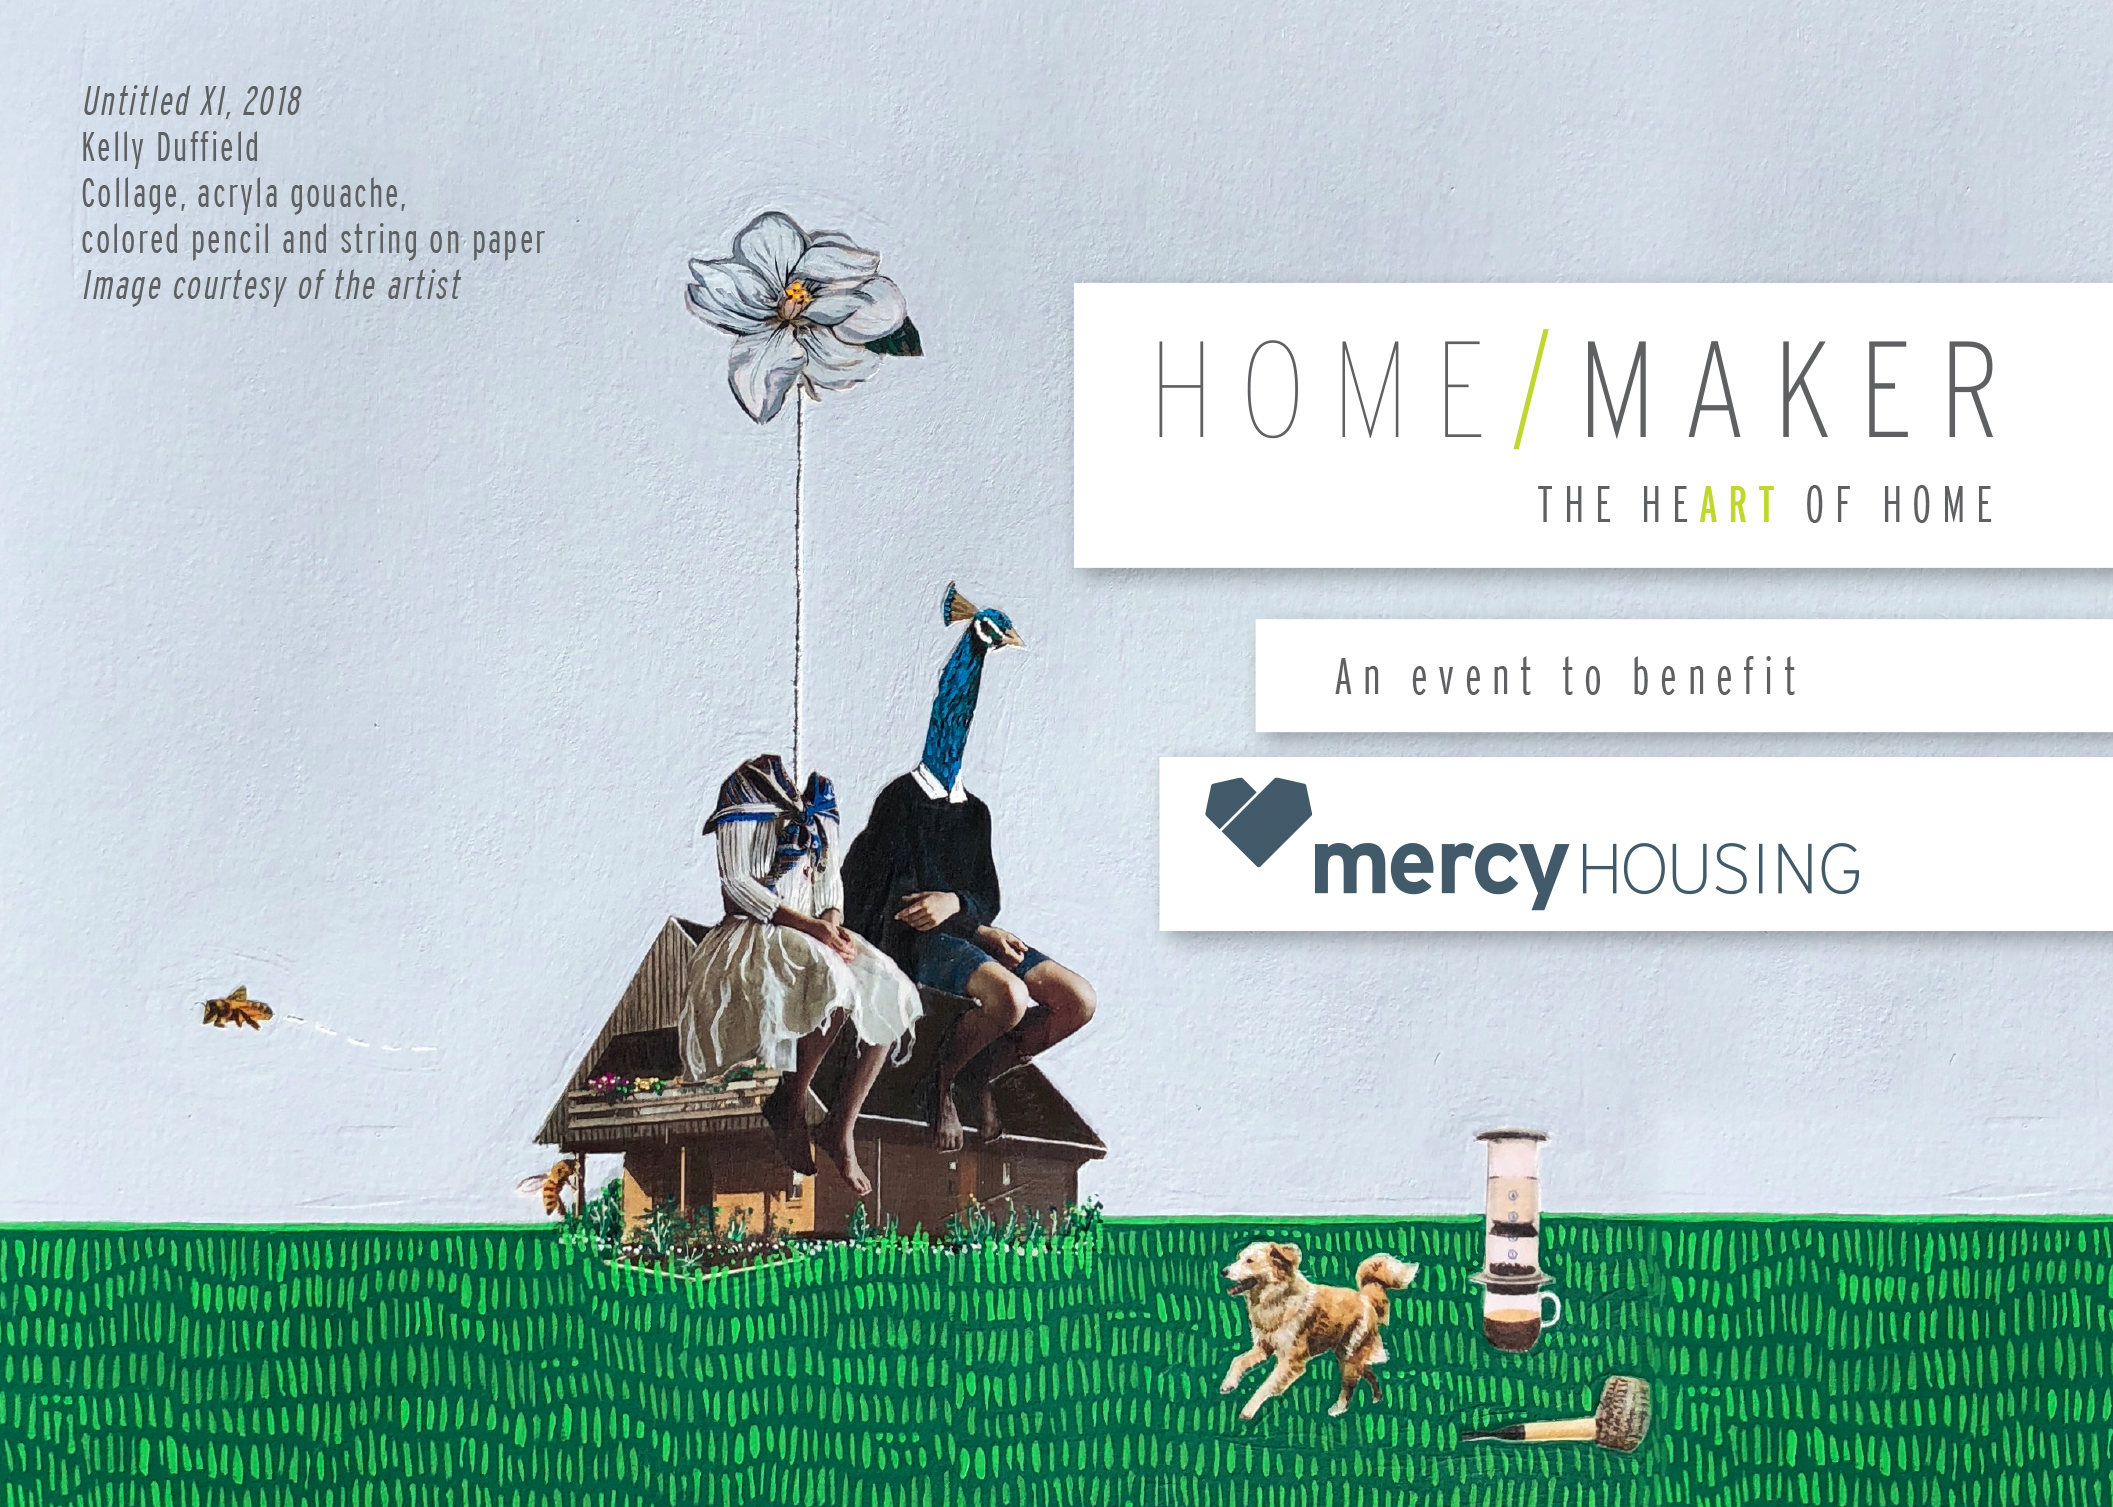 Home/Maker Benefit Art Show